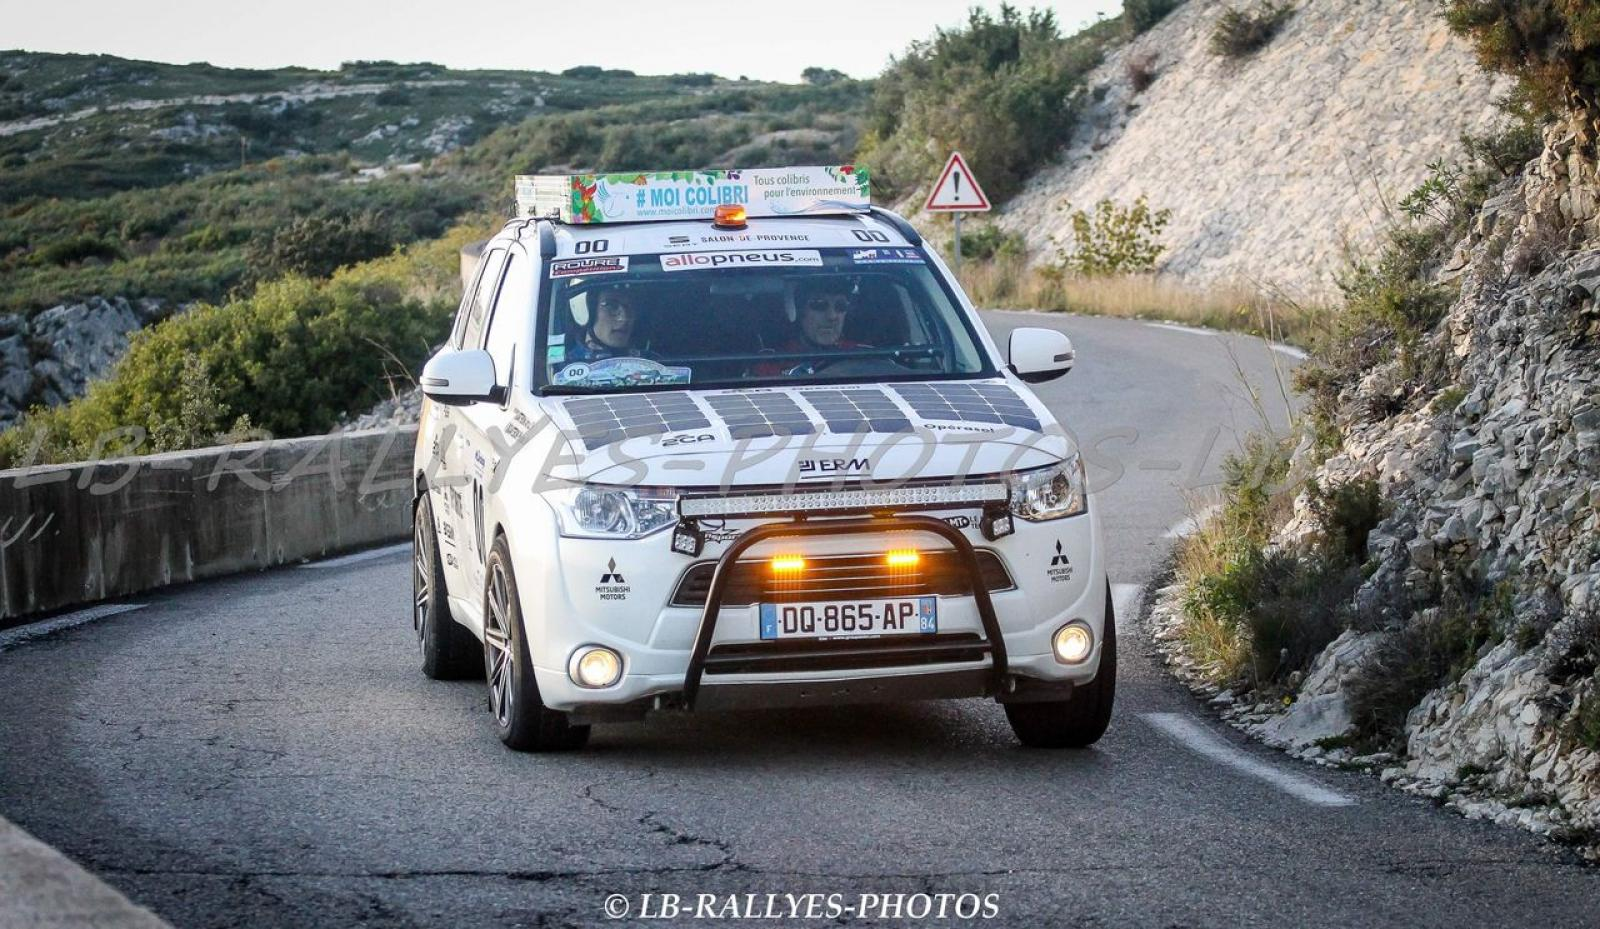 MITSUBISHI Outlander 4x4 PHEV Hybrid and Solar for Rally Orientation and Expedition - 2